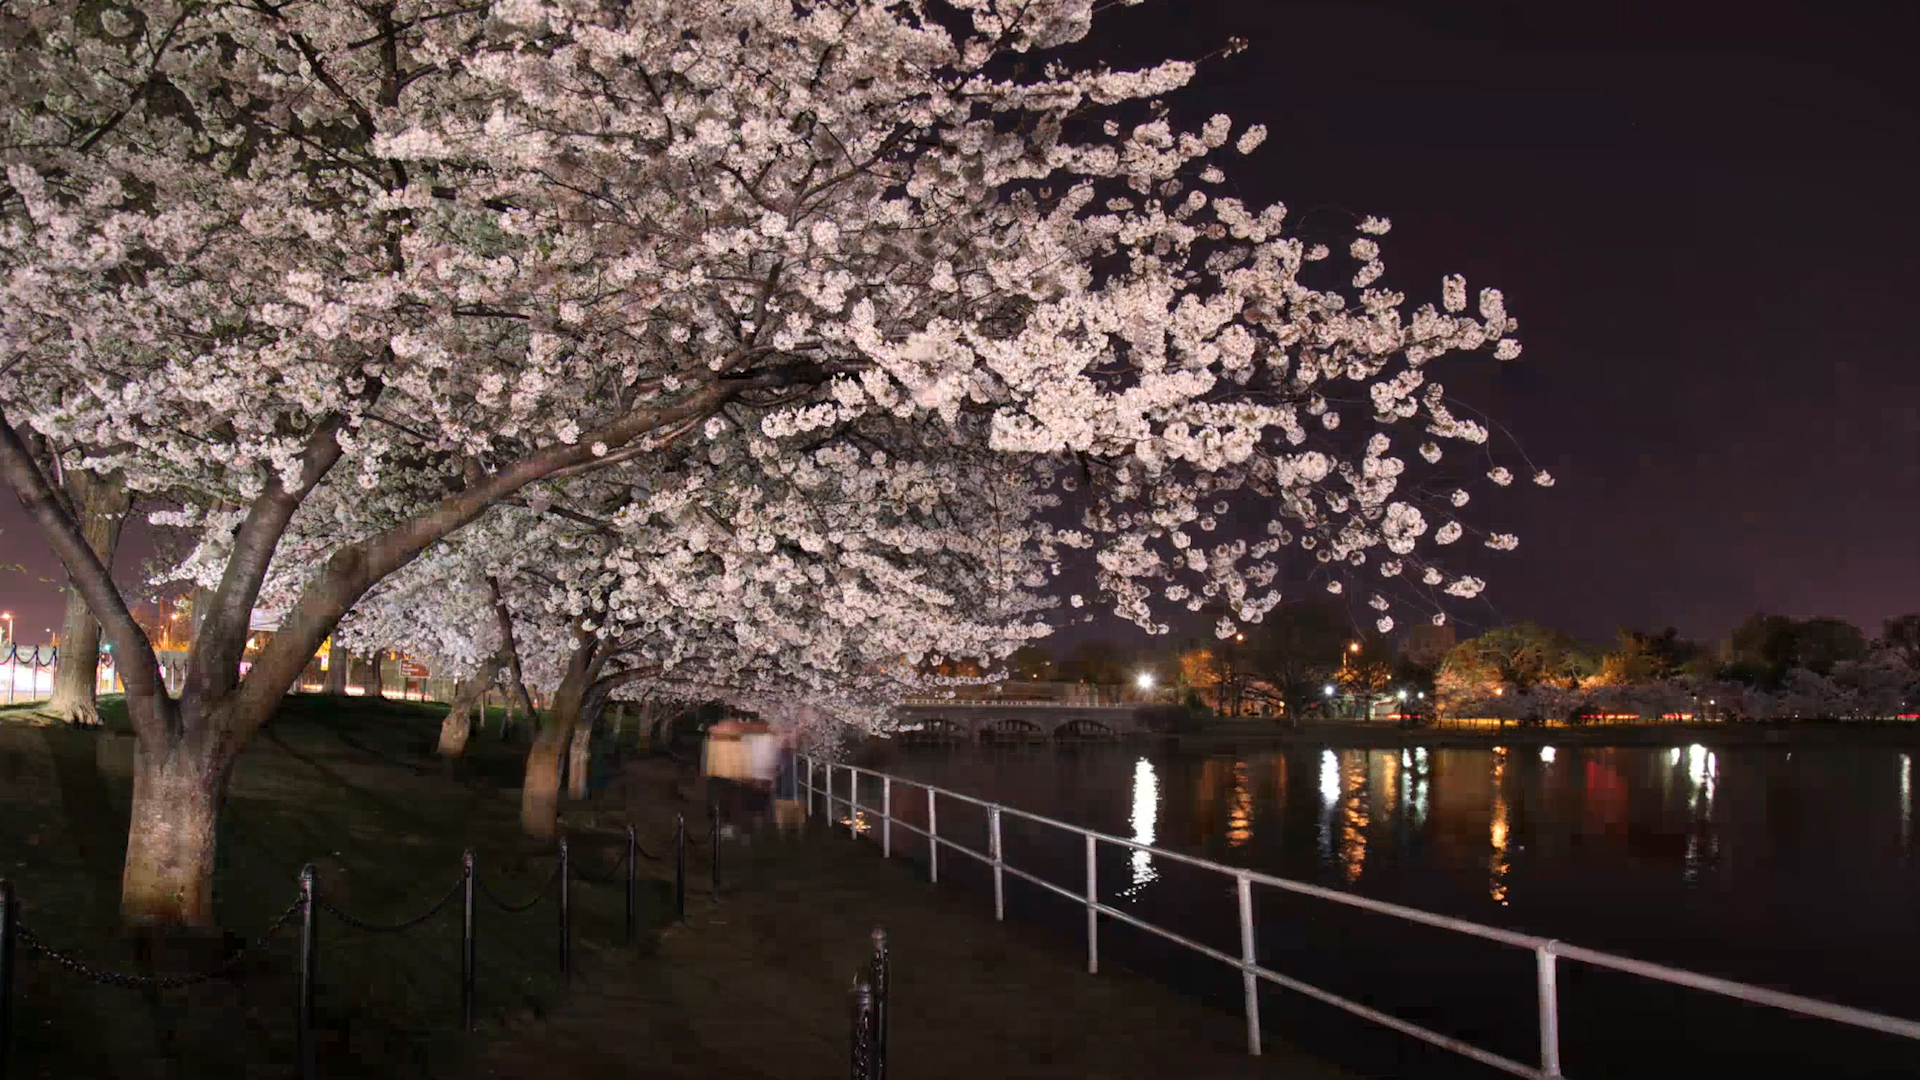 041315cherryblossoms